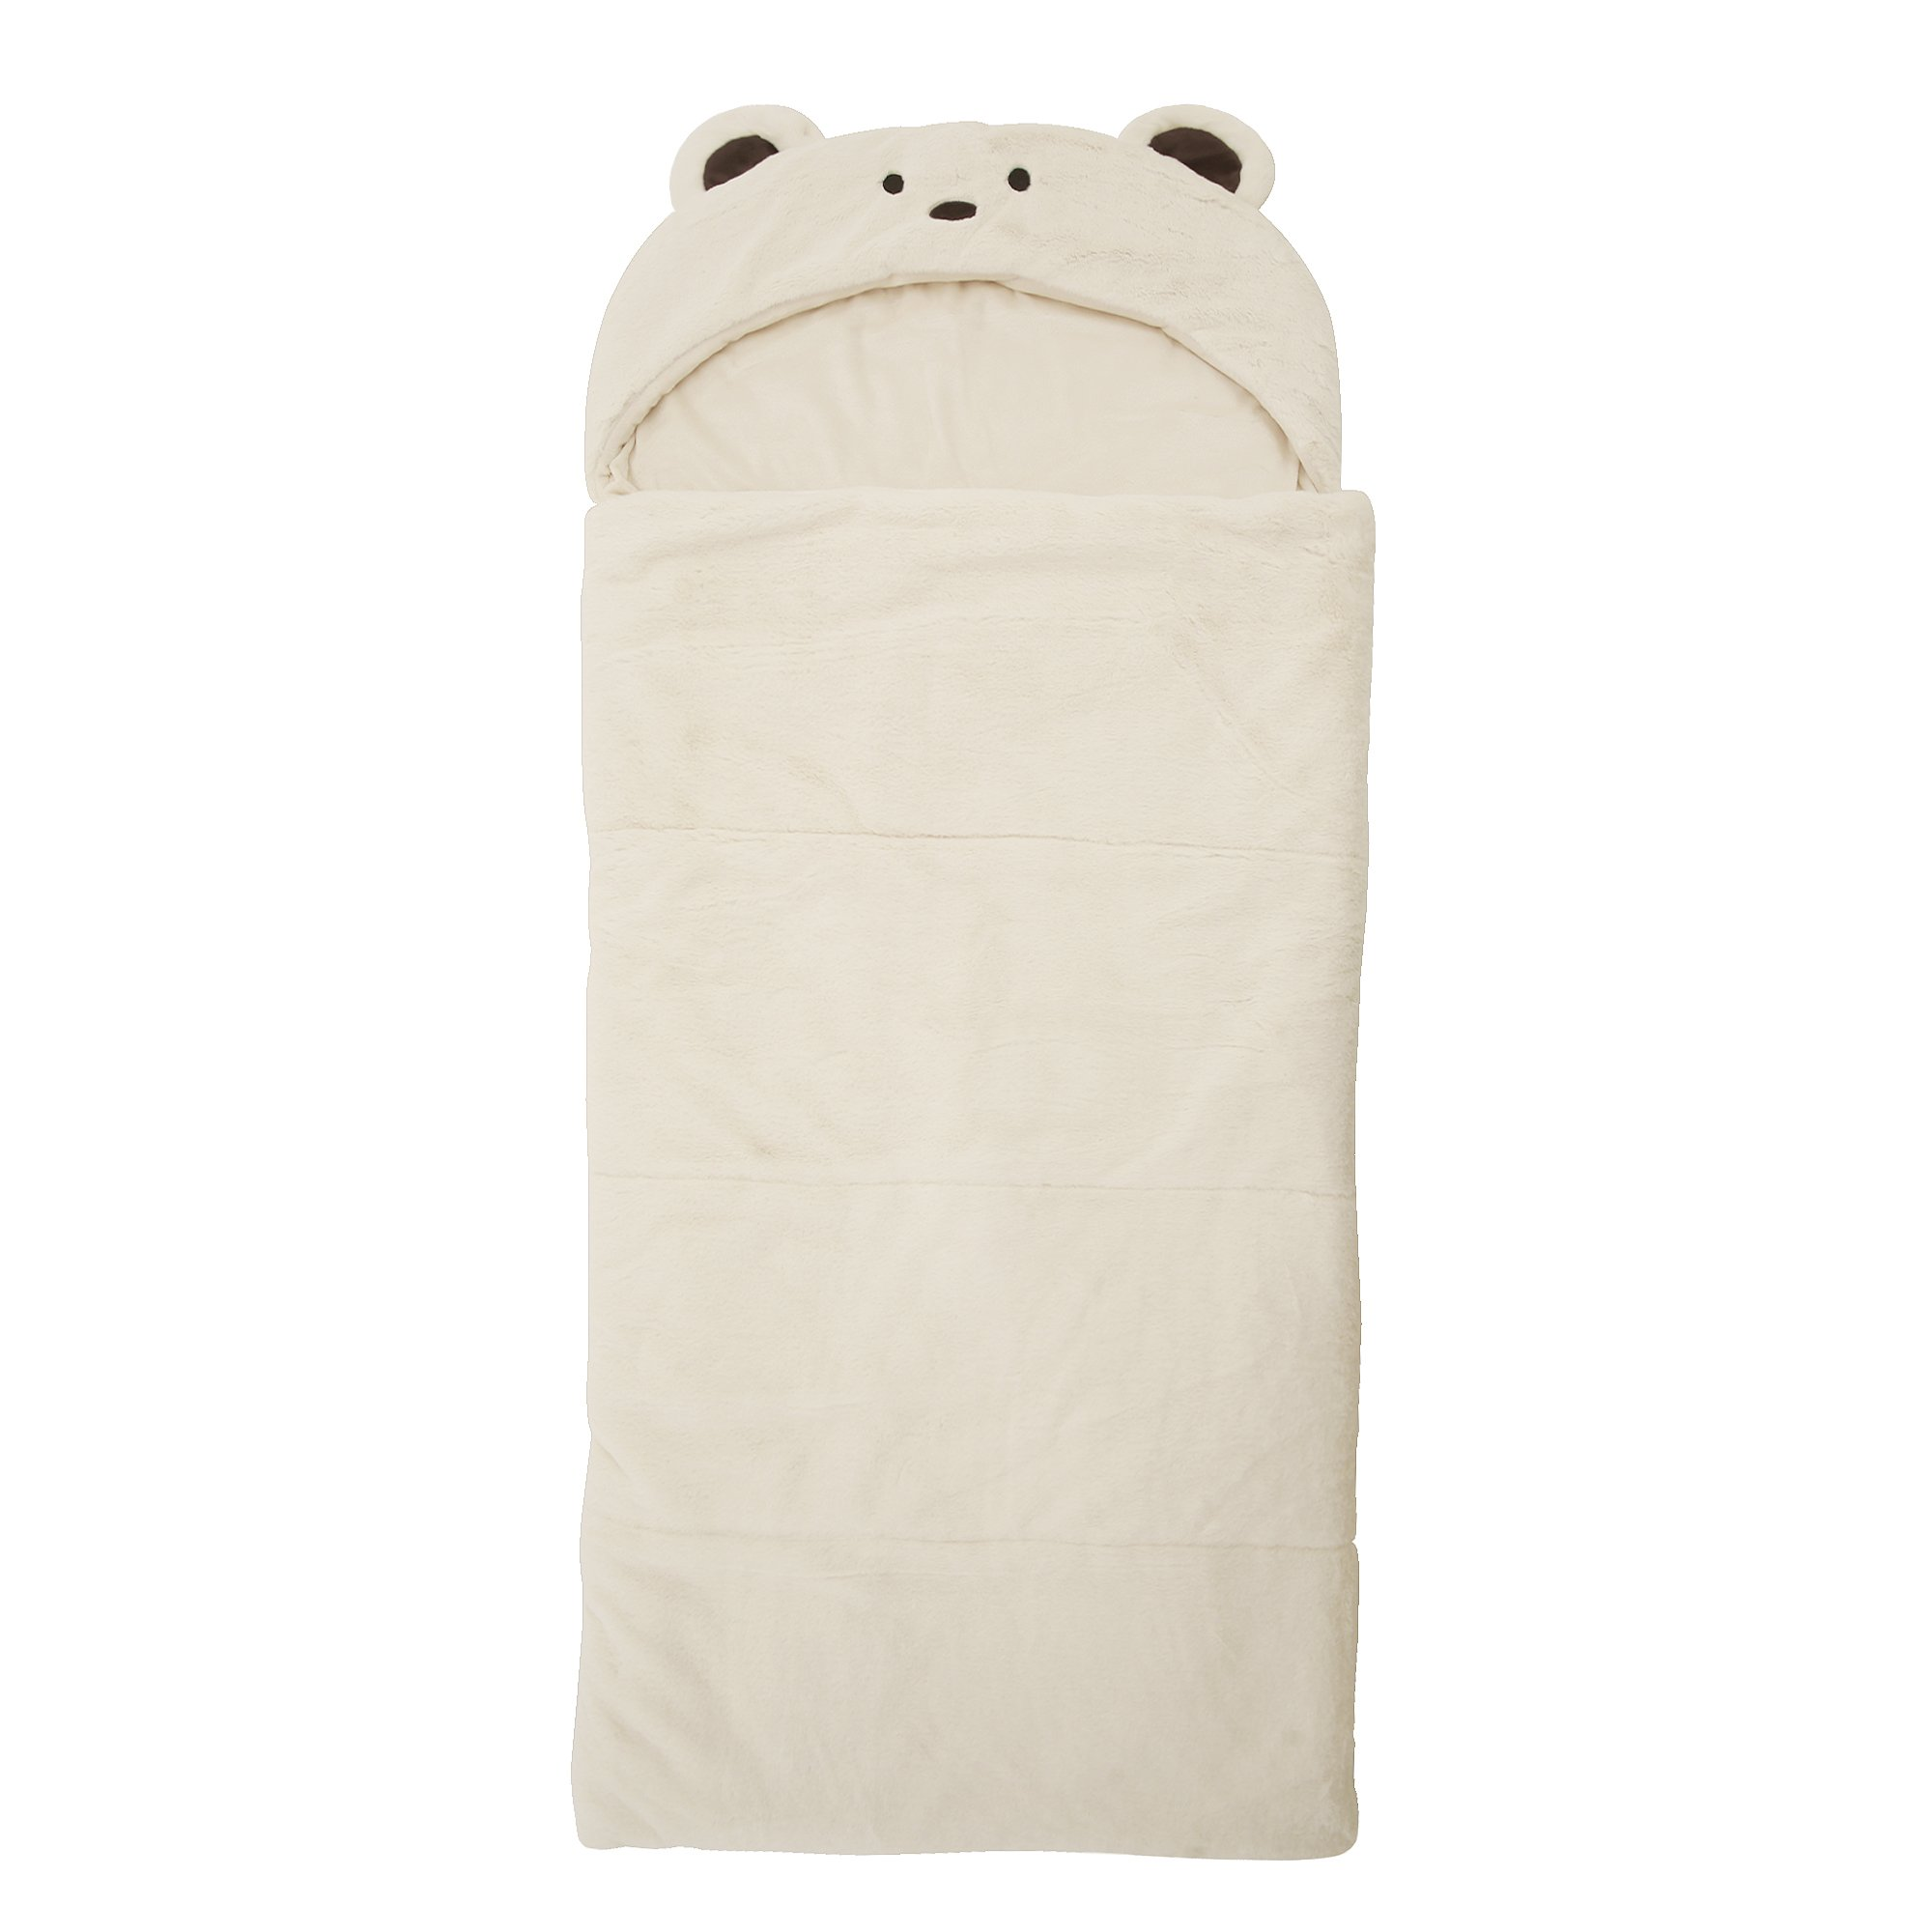 cb6d0b096b Get Quotations · Best Home Fashion Plush Faux Fur Hooded Bear Animal  Sleeping Bag - Cream - 27